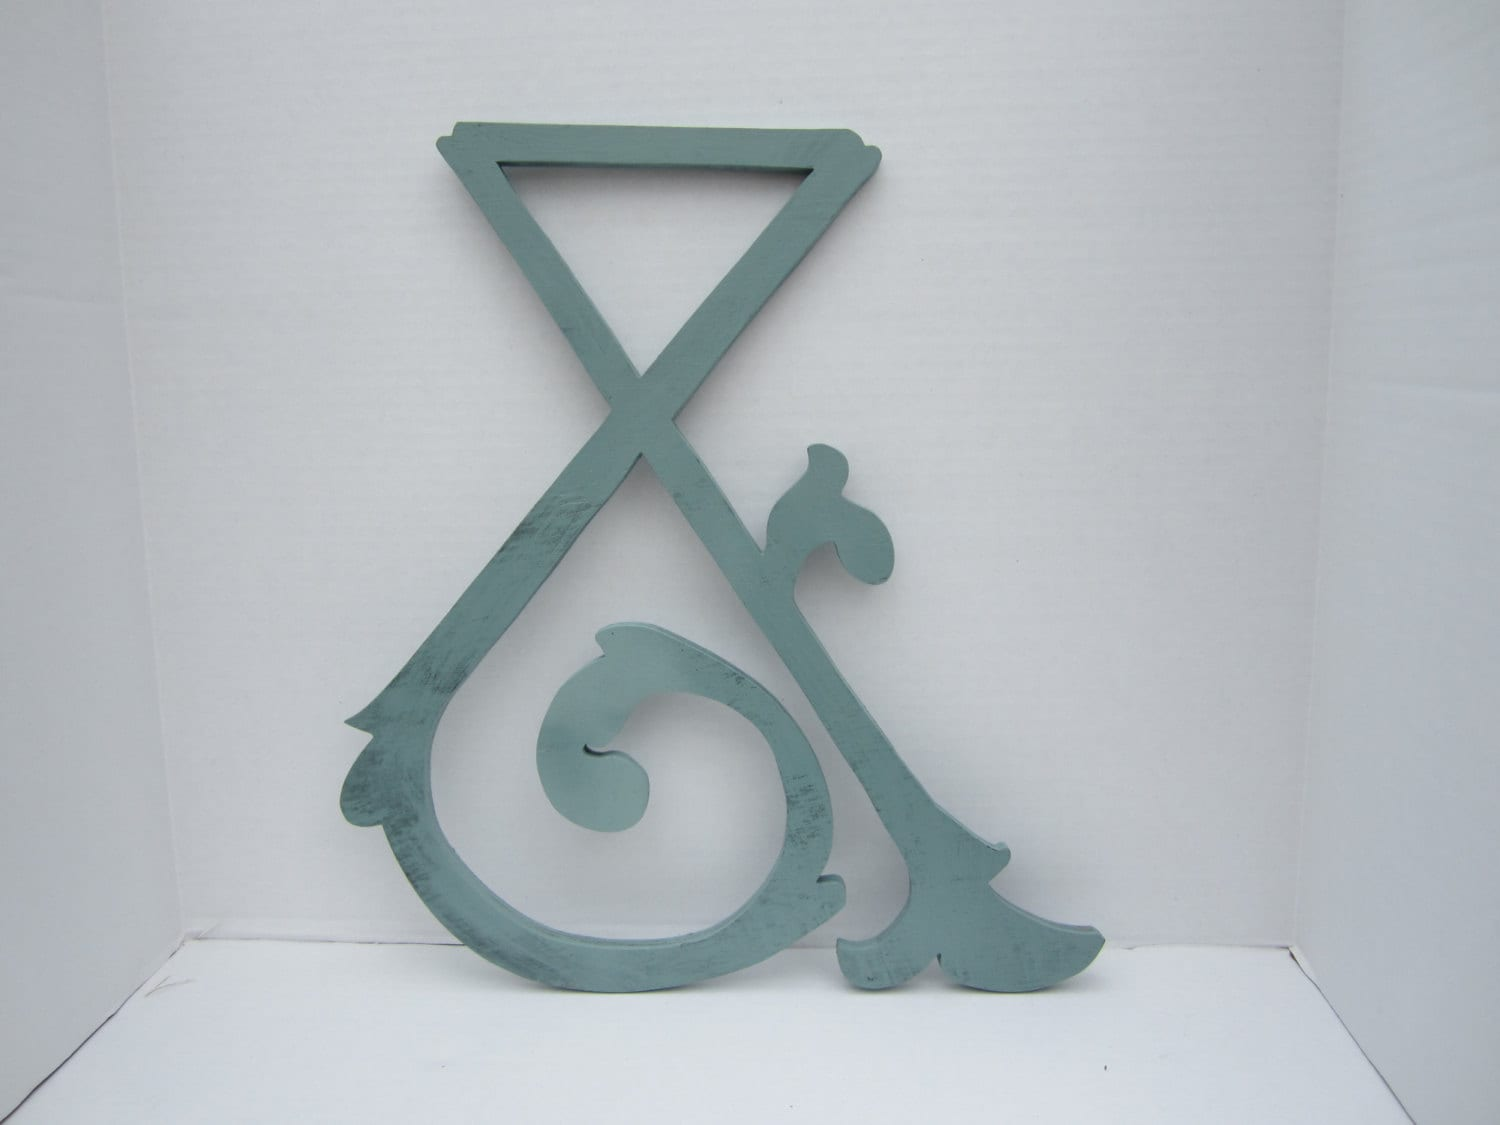 Ampersand wall letter sign shabby chic wedding decor for Ampersand decor